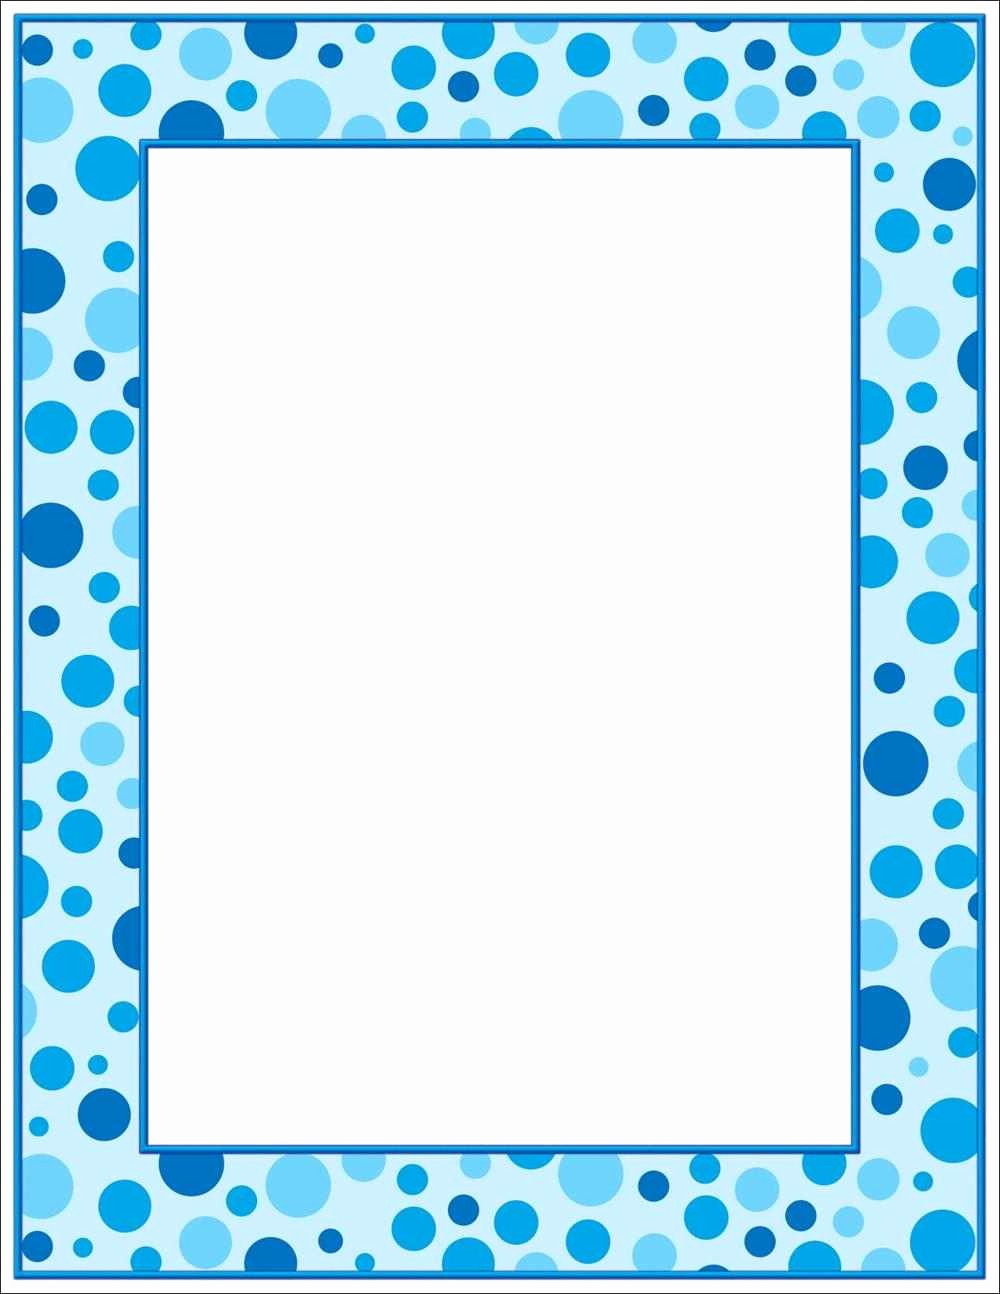 Polka Dot Template for Word New 4 Best Of Printable Polka Dot Borders Blue Polka